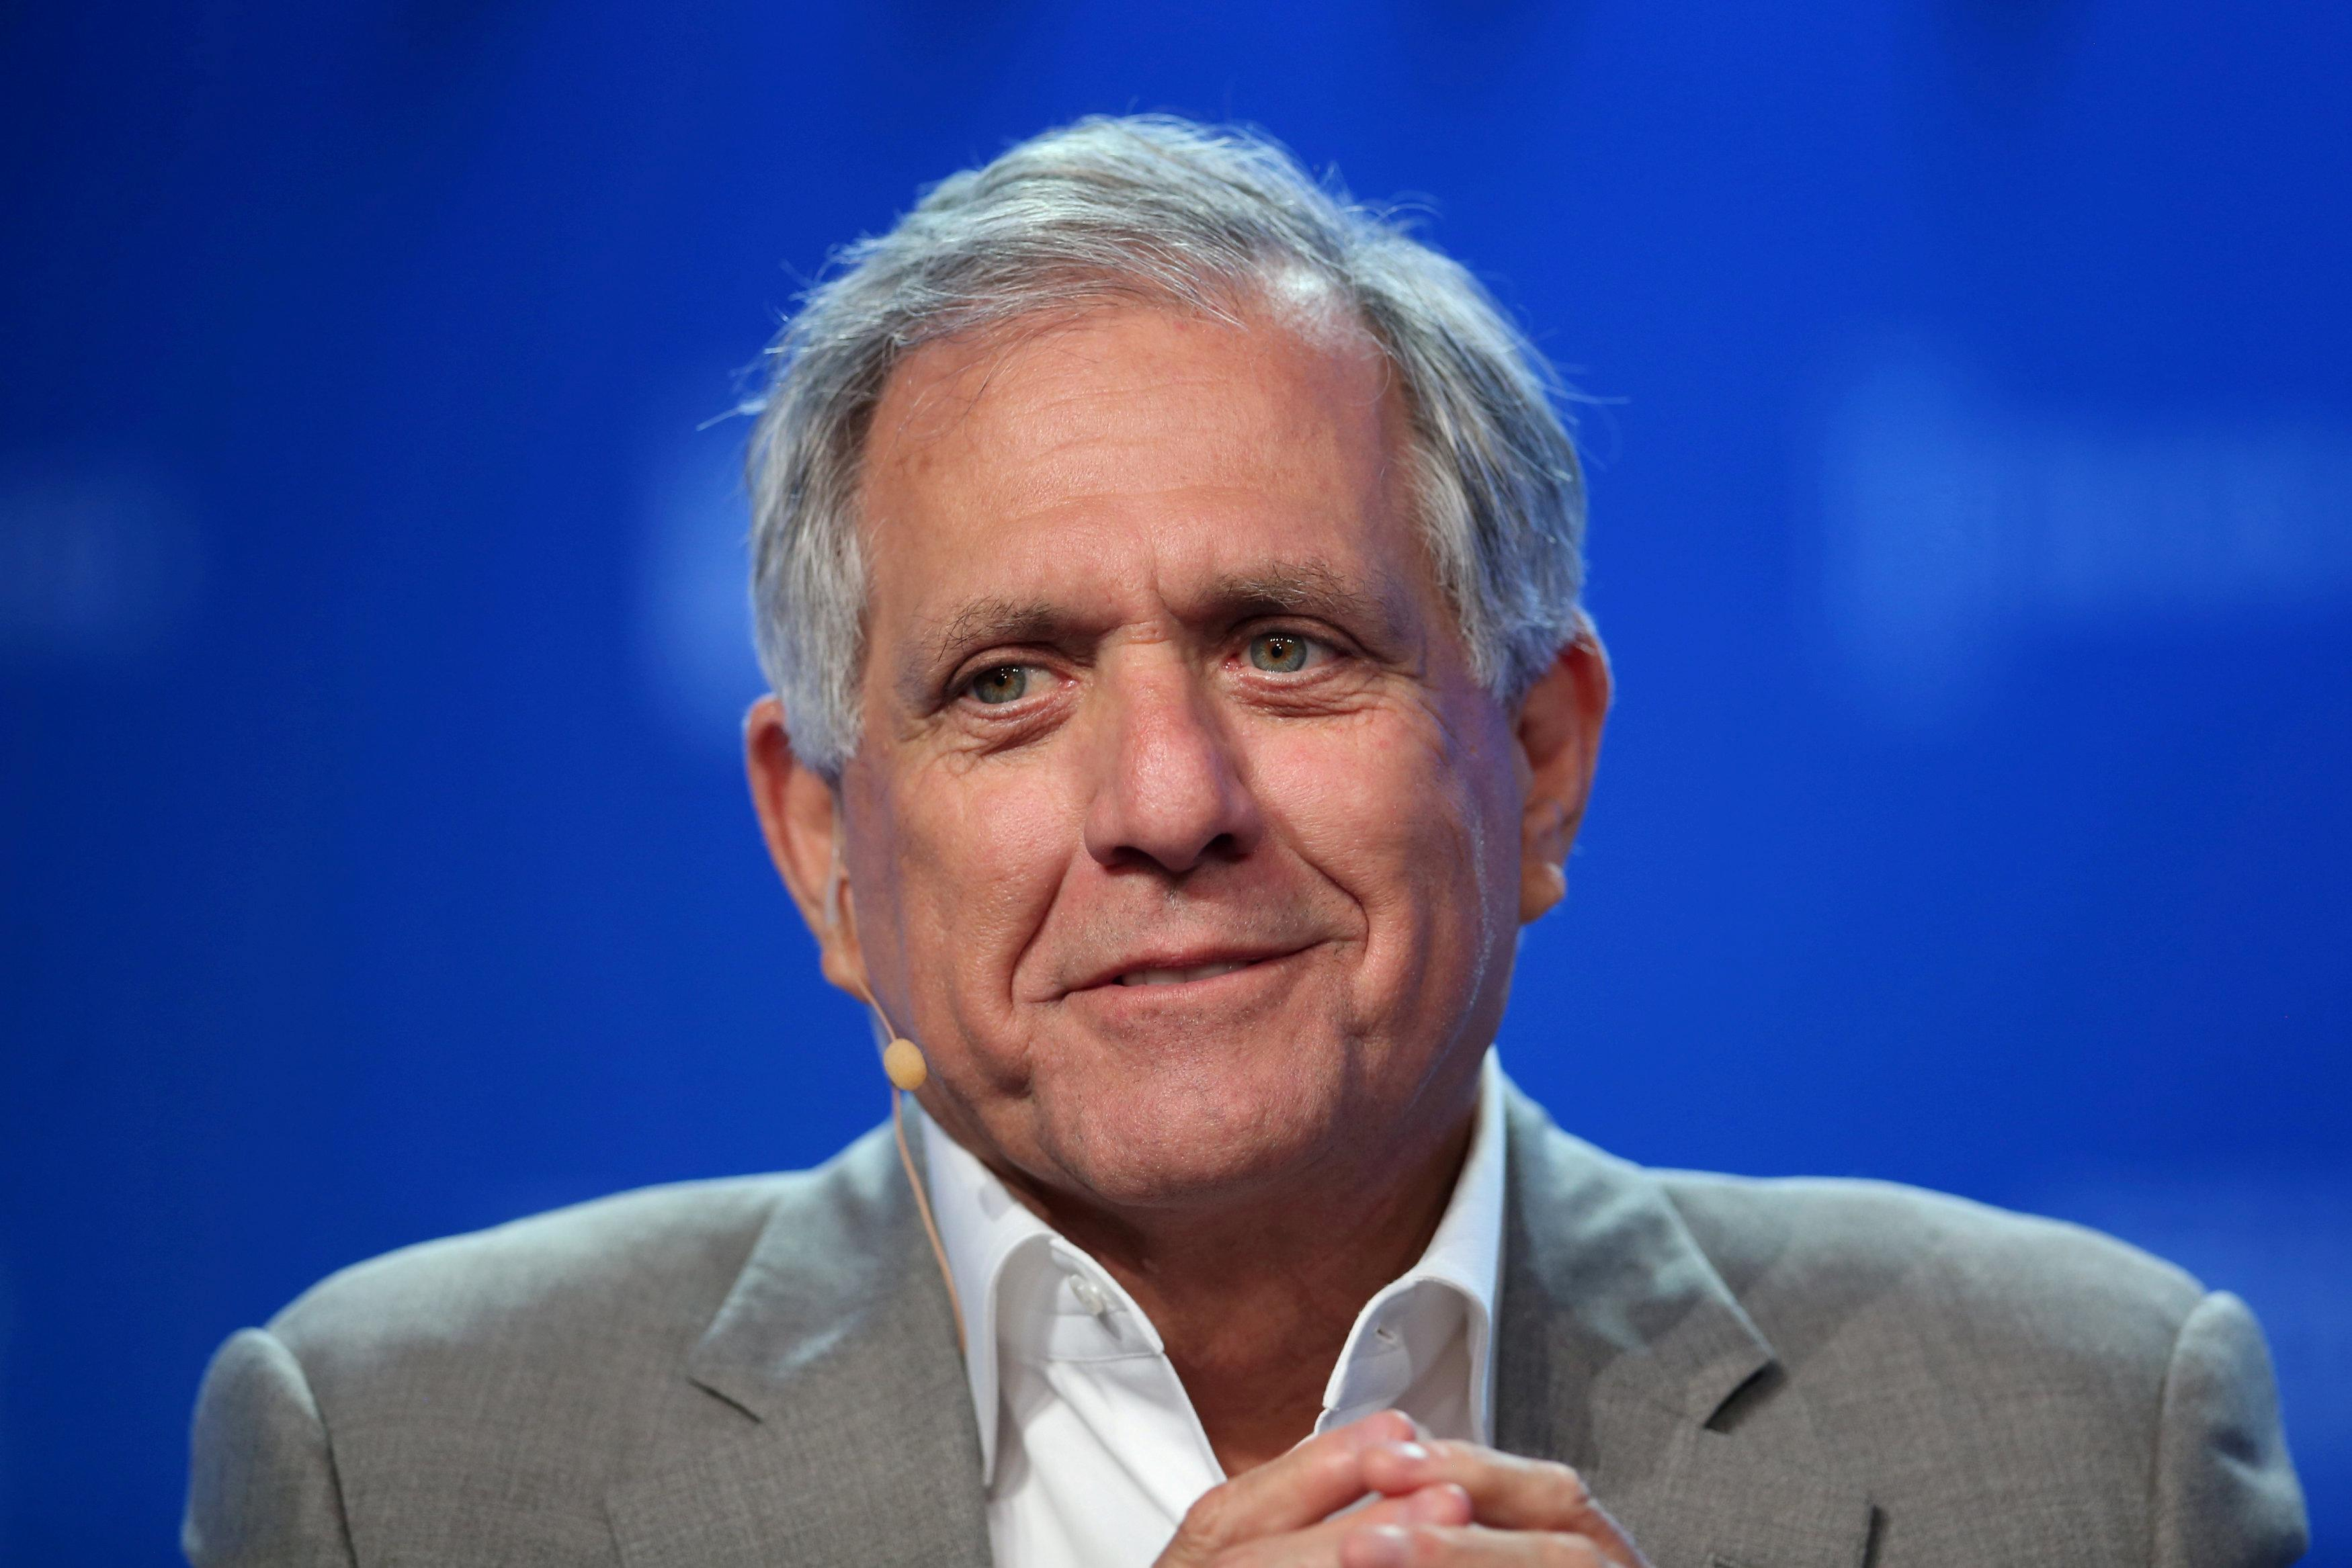 CBS CEO Leslie Moonves Resigns After Sexual Harassment Allegations